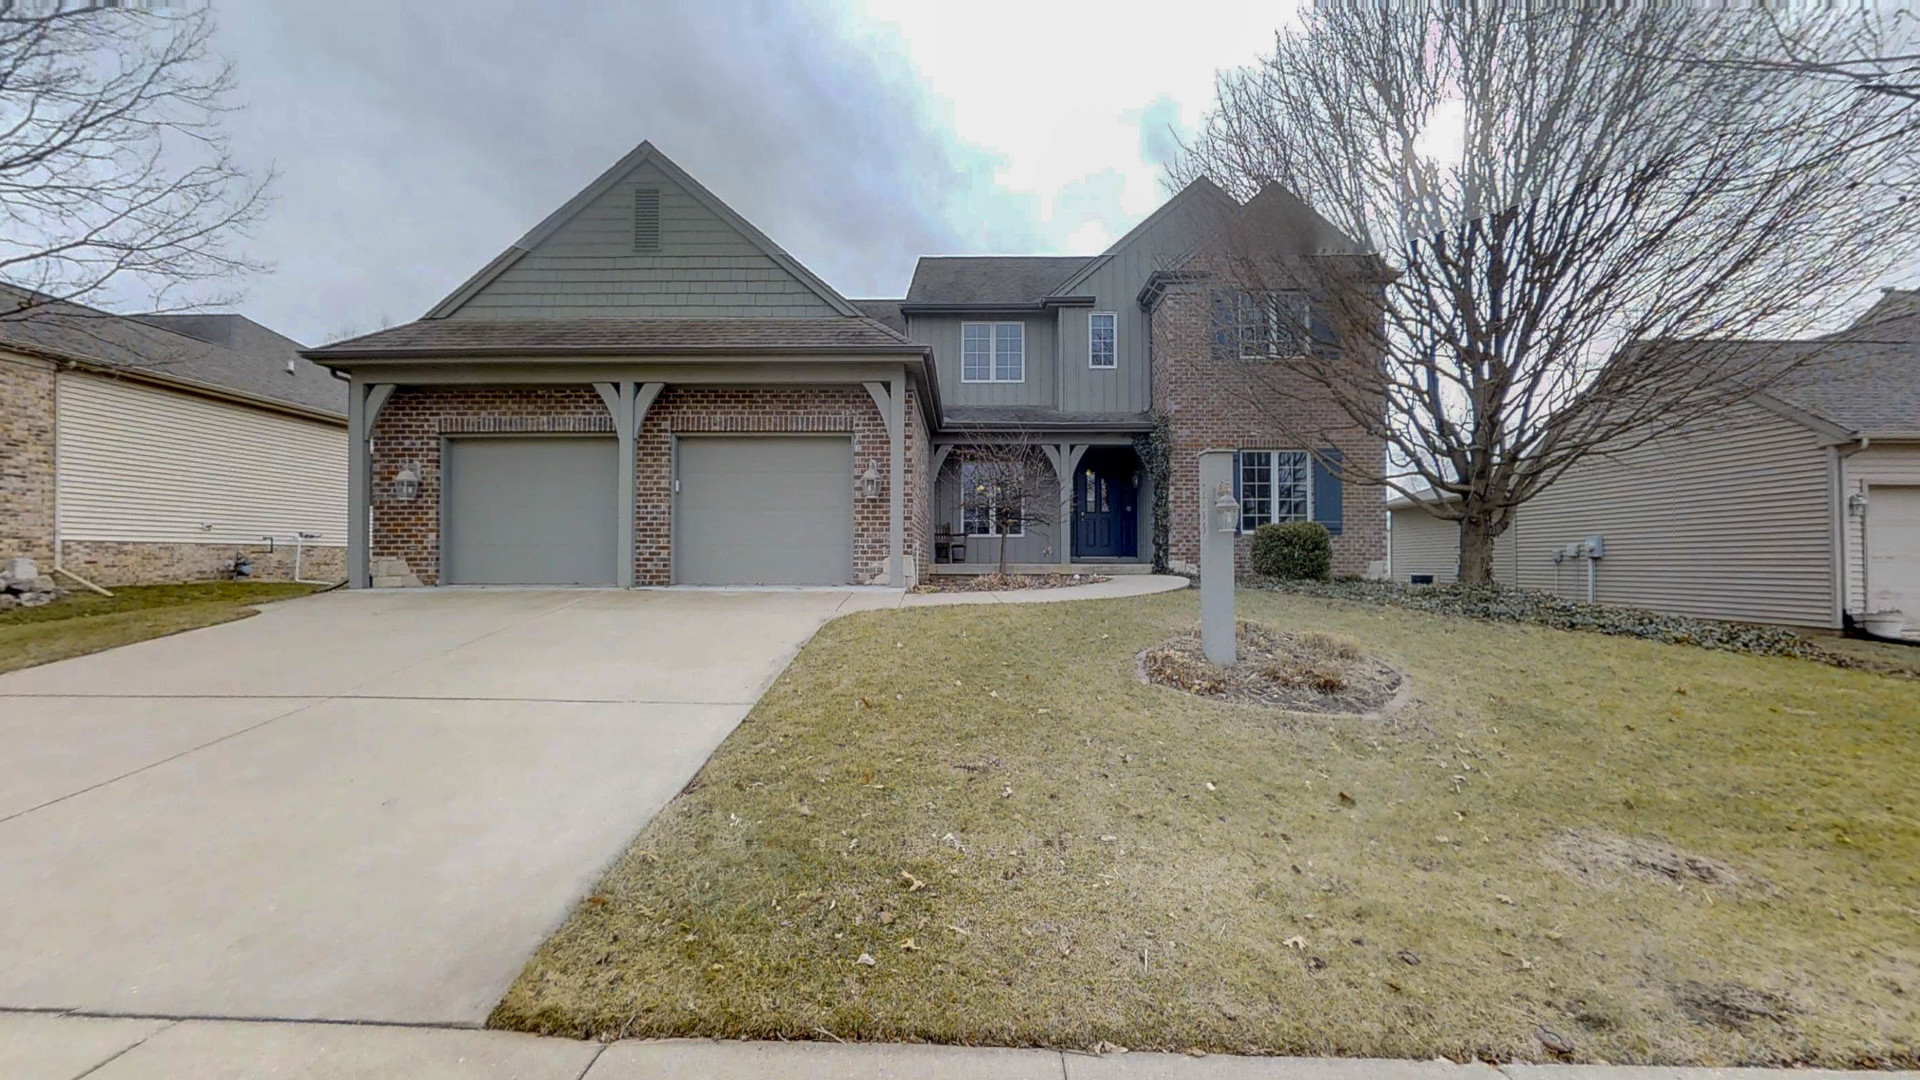 3305 Pinegrove Place, Champaign in Champaign County, IL 61822 Home for Sale